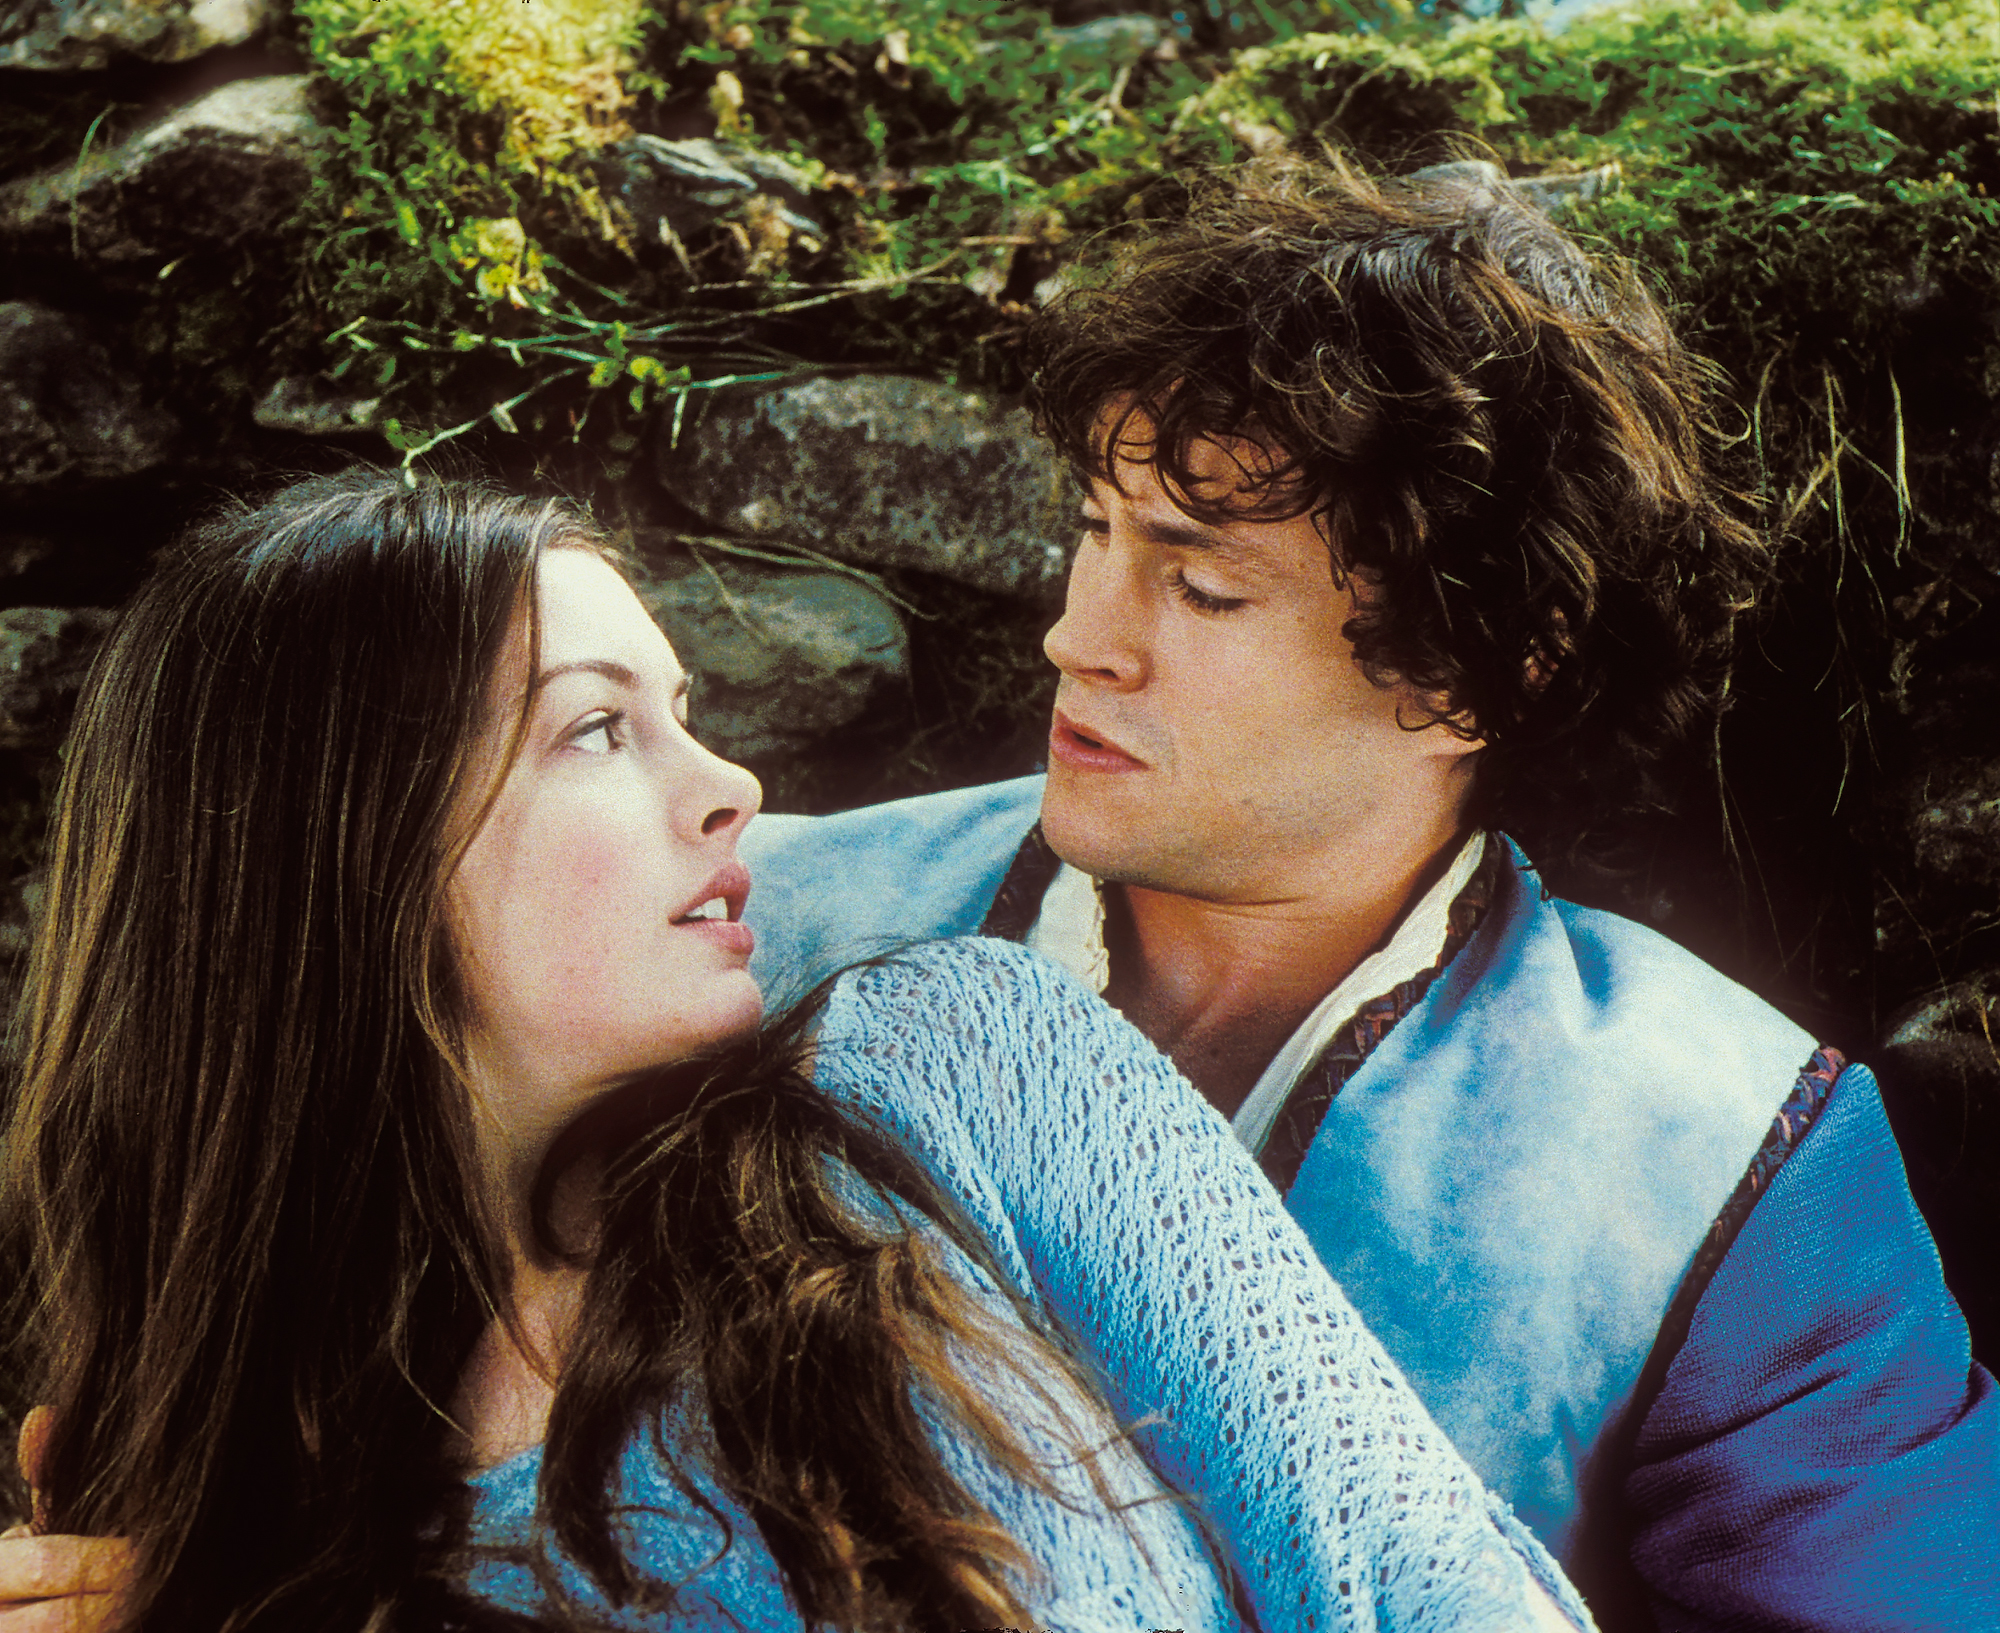 Anne-Hathaway-Hugh-Dancy-Ella-Enchanted - The Oscar winner got the chance to her royal skills from the Princess Diaries series in 2004's Ella Enchanted — another modern day take on (you guessed it!) Cinderella.